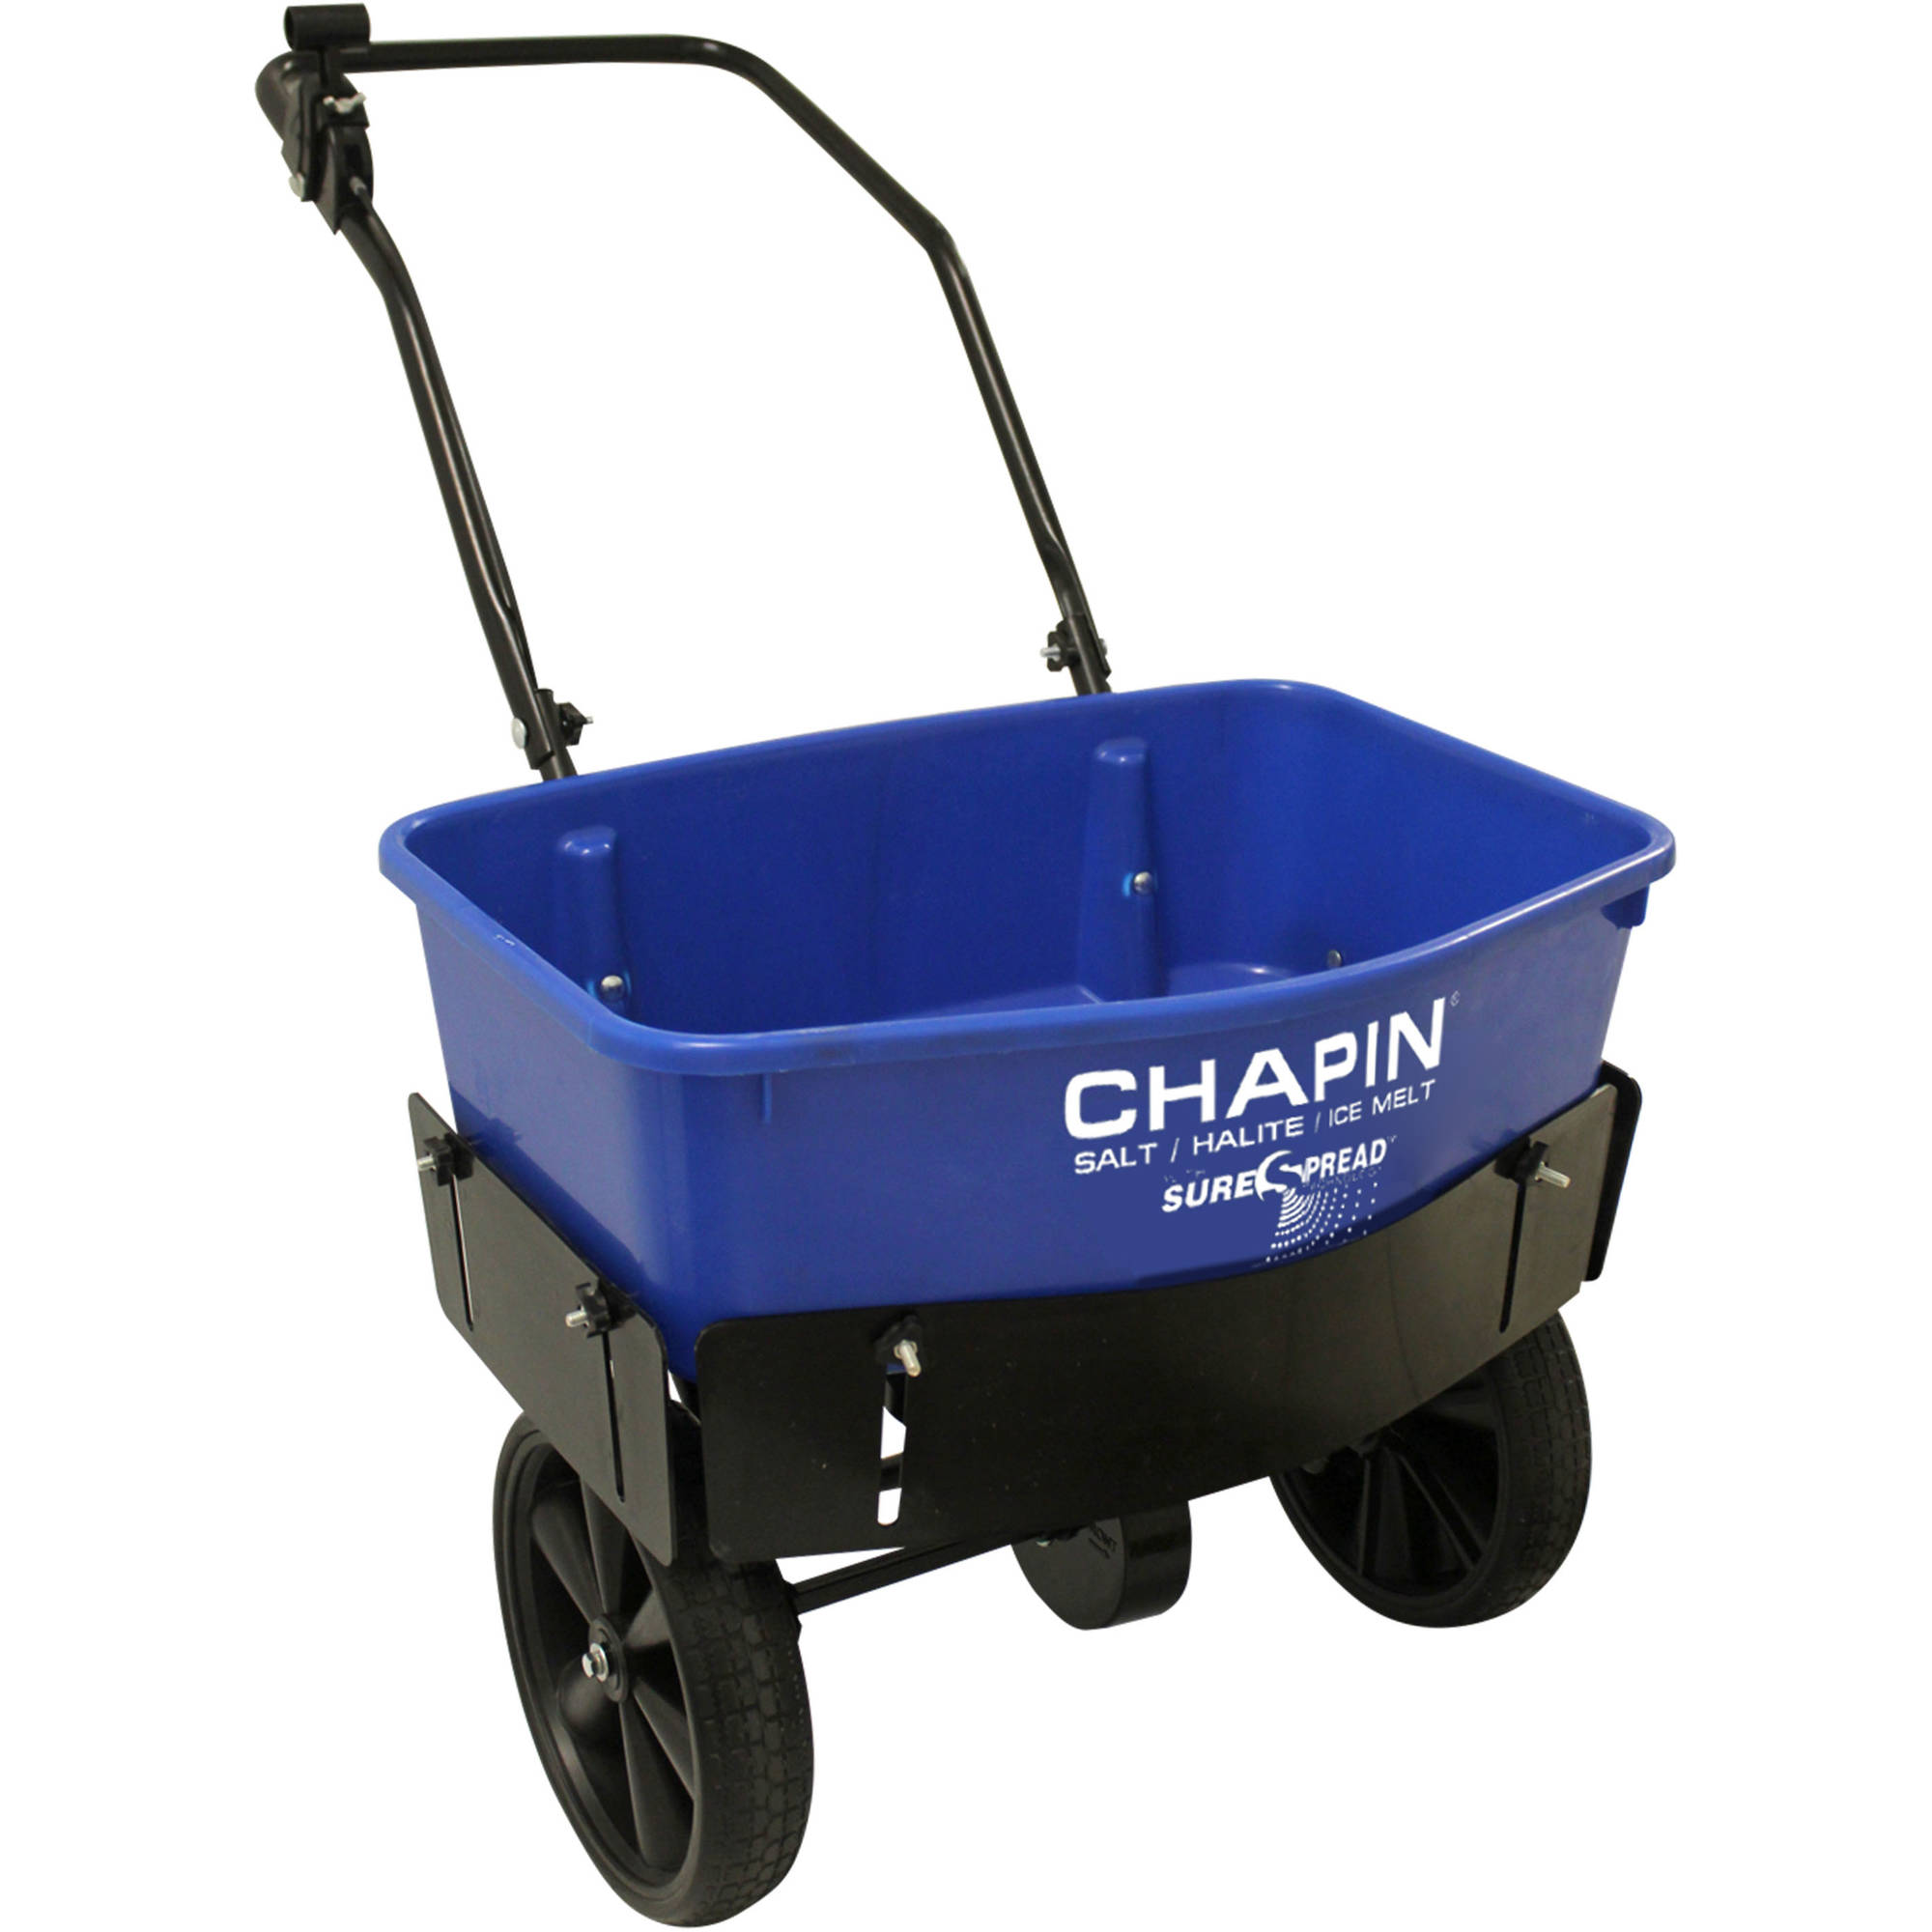 Chapin 80028A 70-Pound Capacity Residential Salt/Ice Melt Spreader